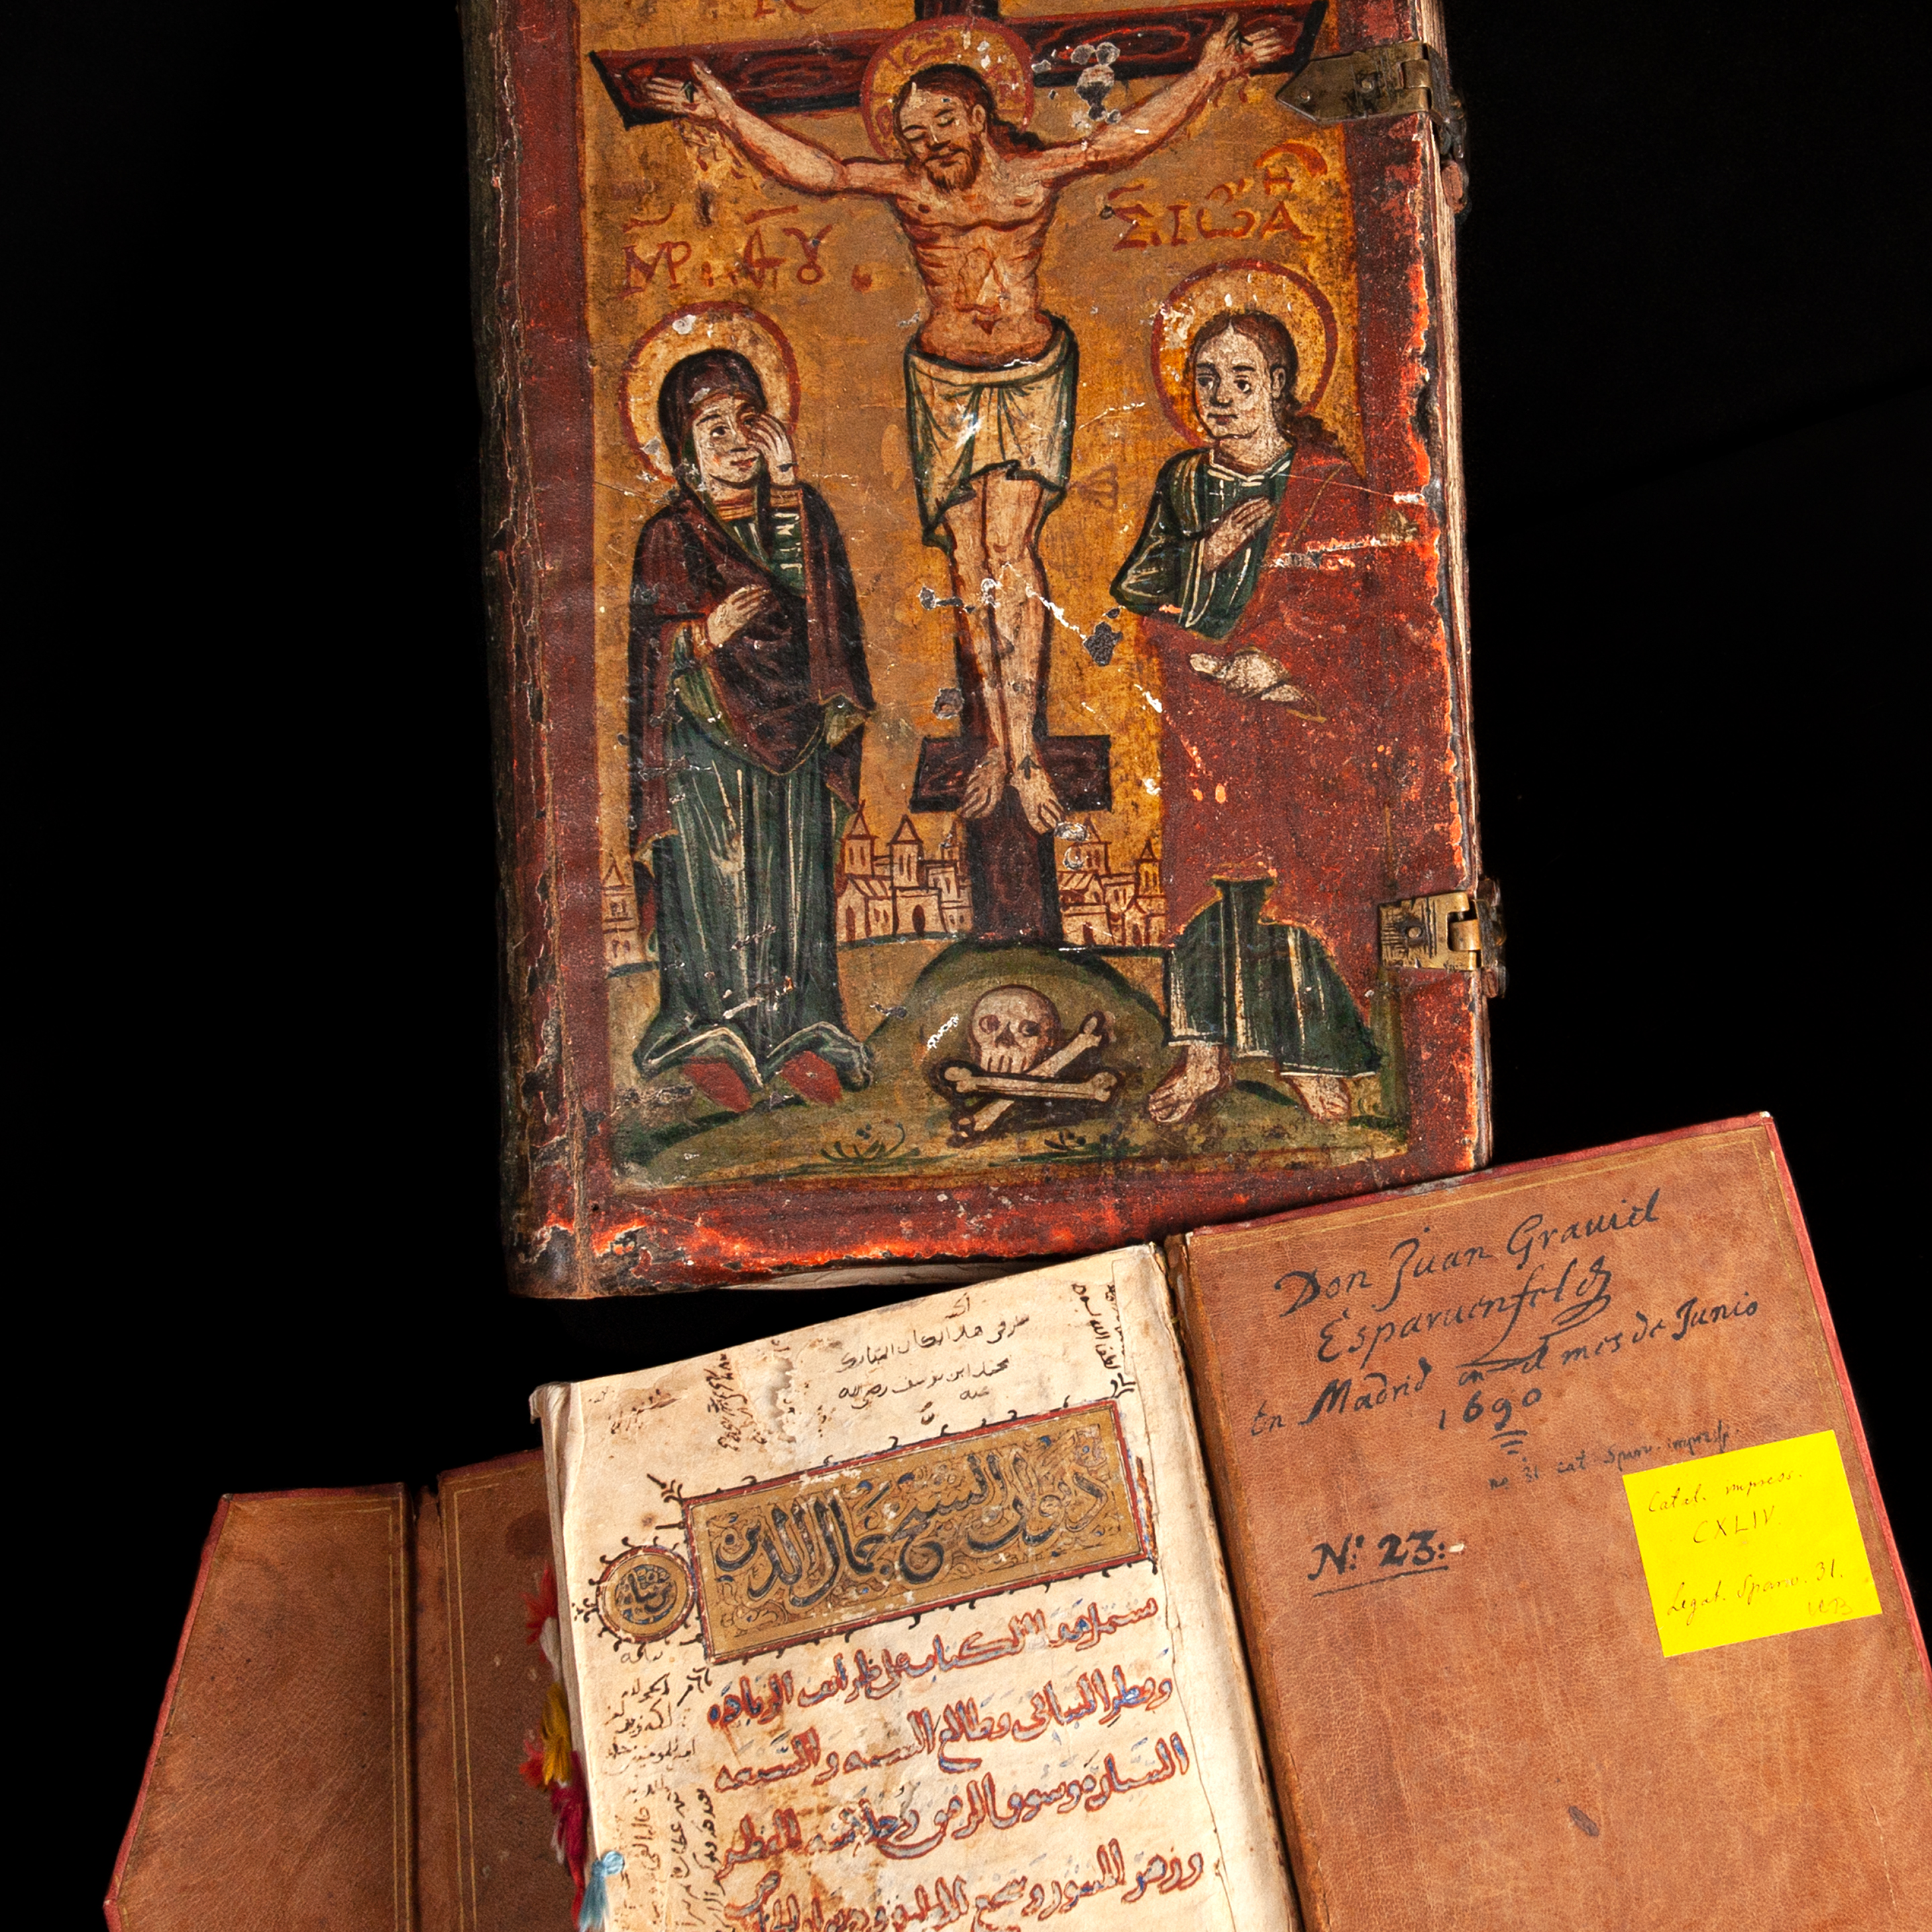 two books, one with arabic text and the other with a crucifixion scene painted on the cover